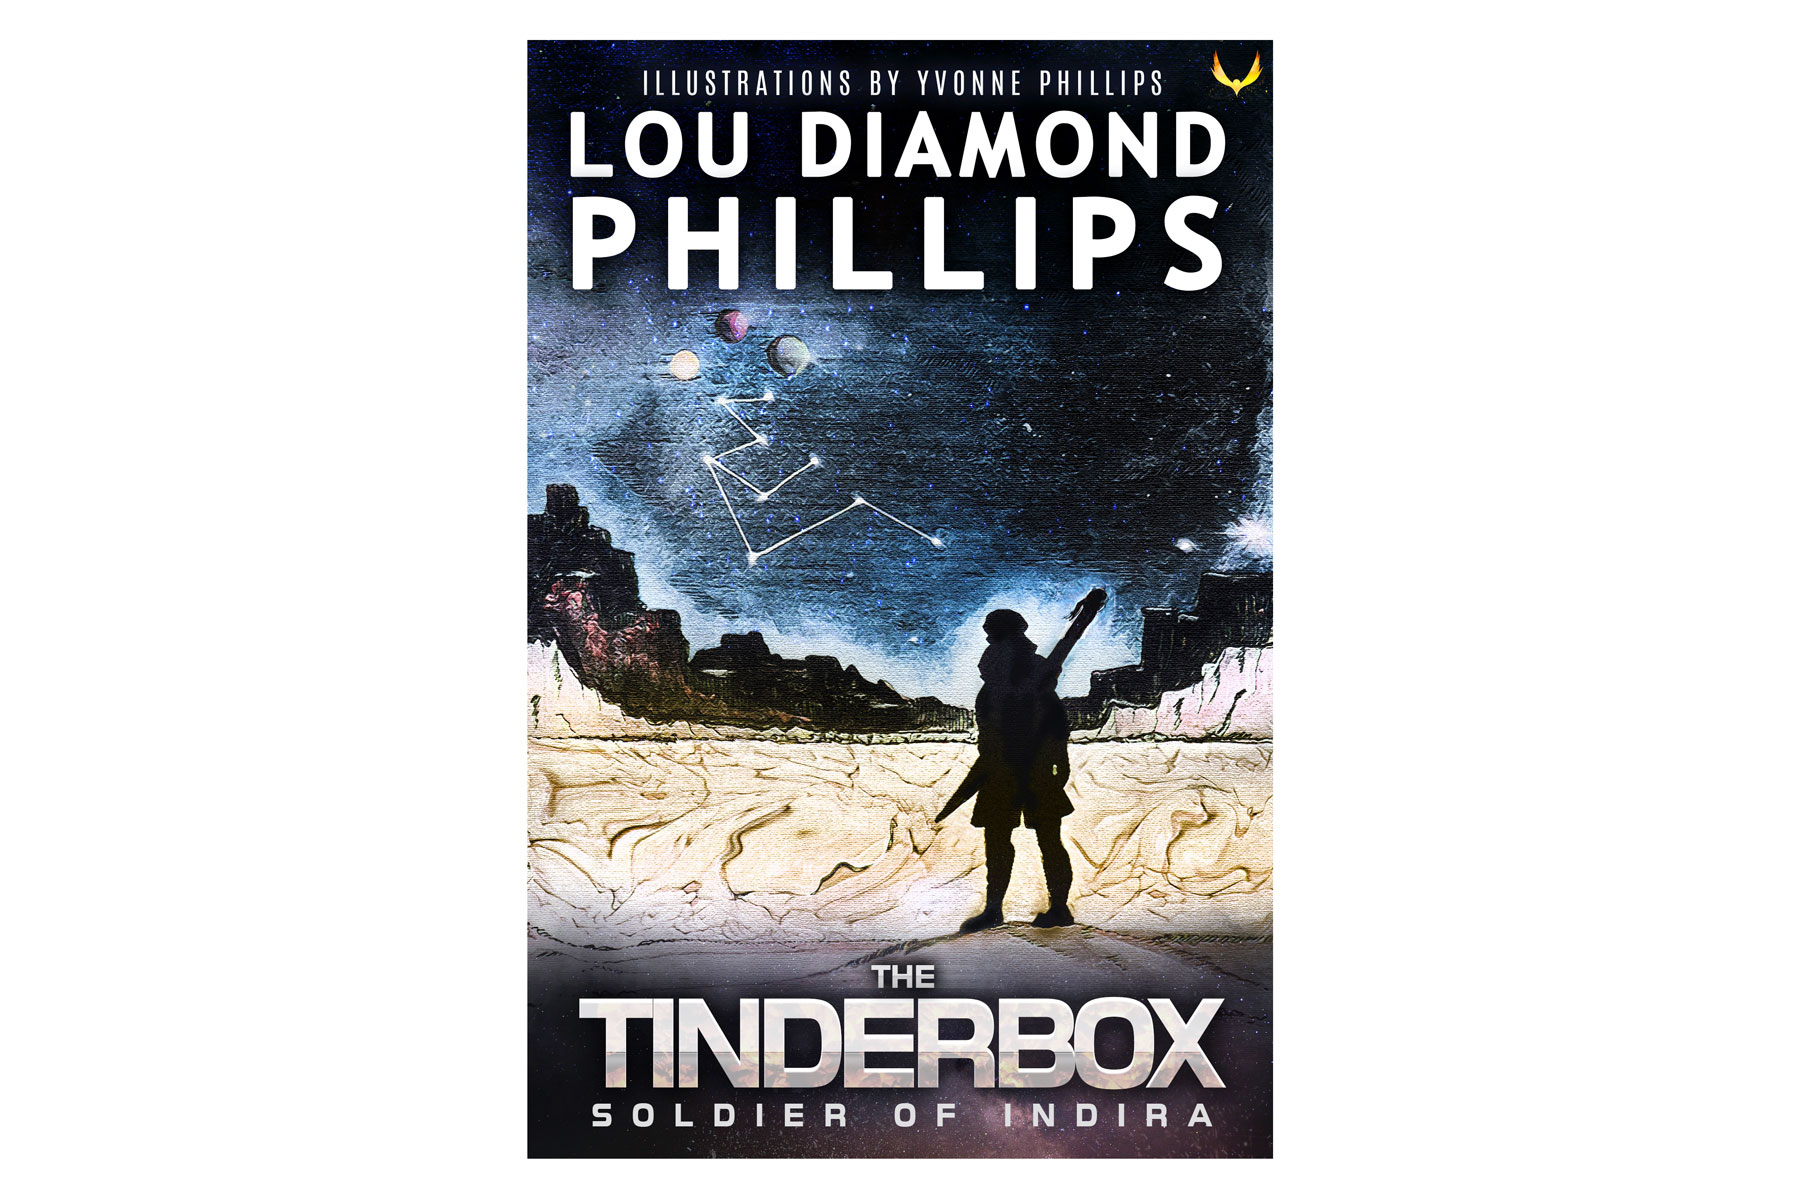 The Tinderbox: Soldier of Indira  by Lou Diamond Phillips